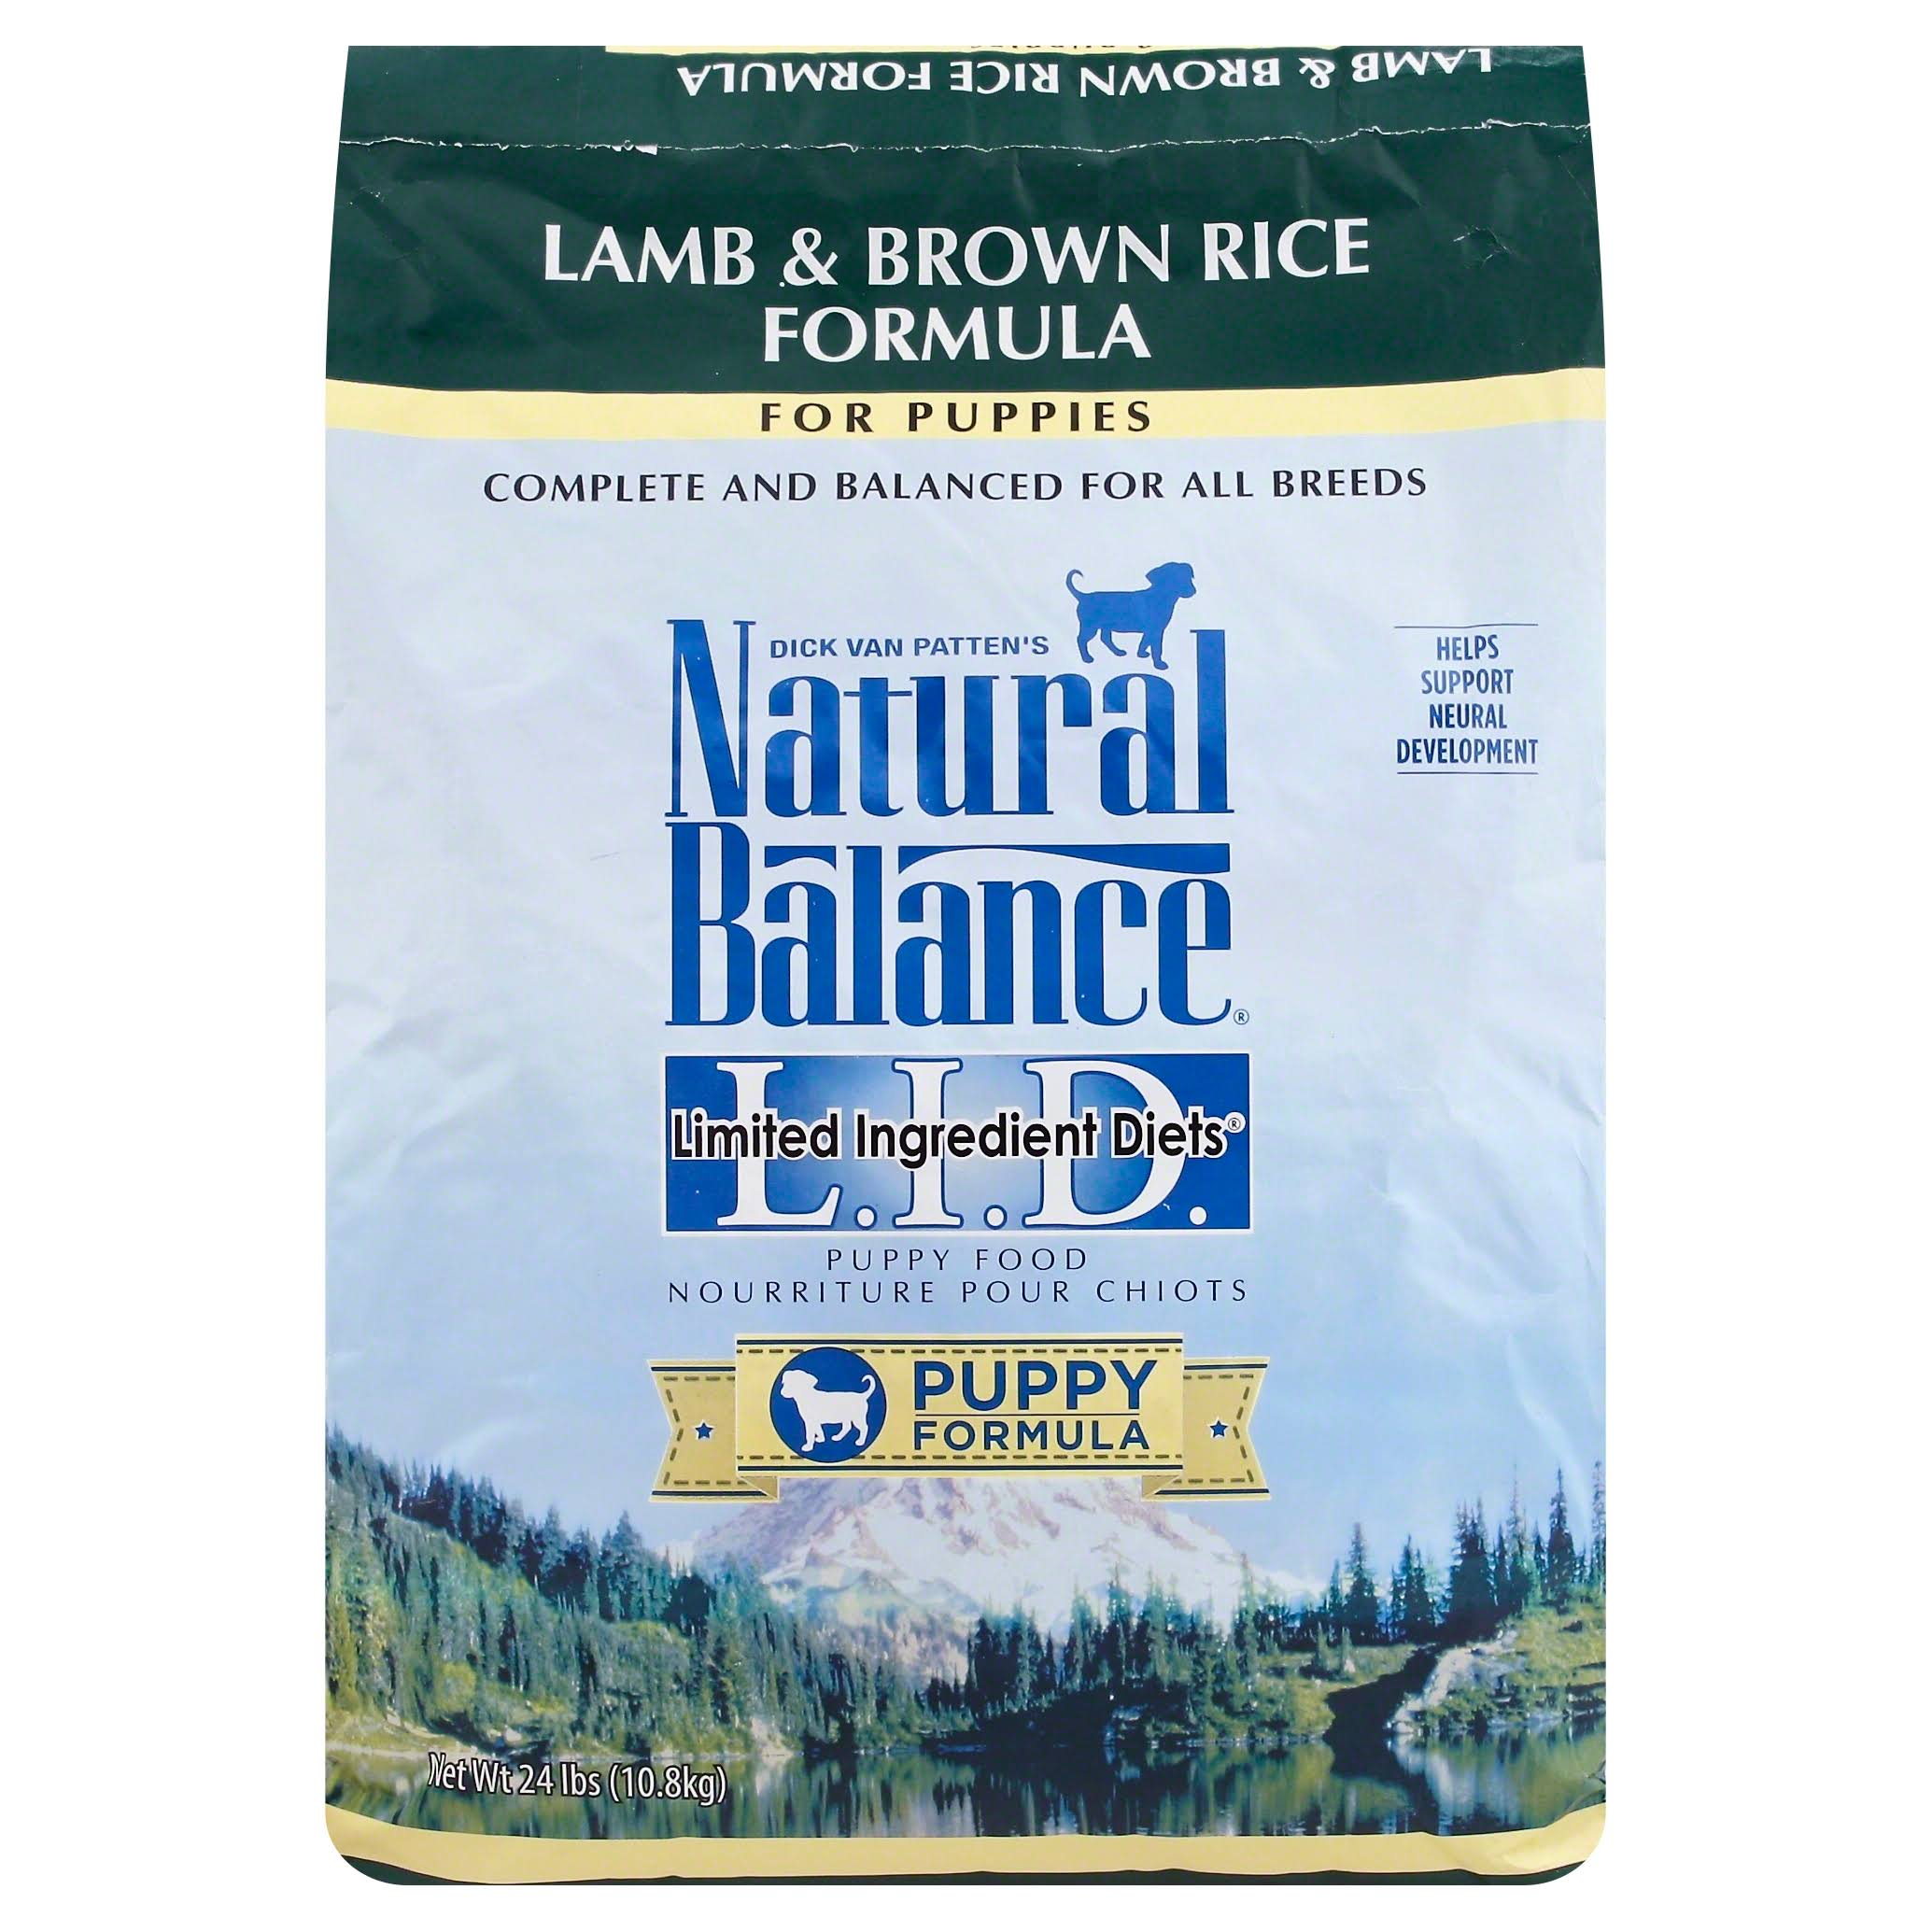 Natural Balance Puppy Formula L.I.D. Limited Ingredient Diets Dry Dog Food - Lamb and Brown Rice Formula, 24lbs